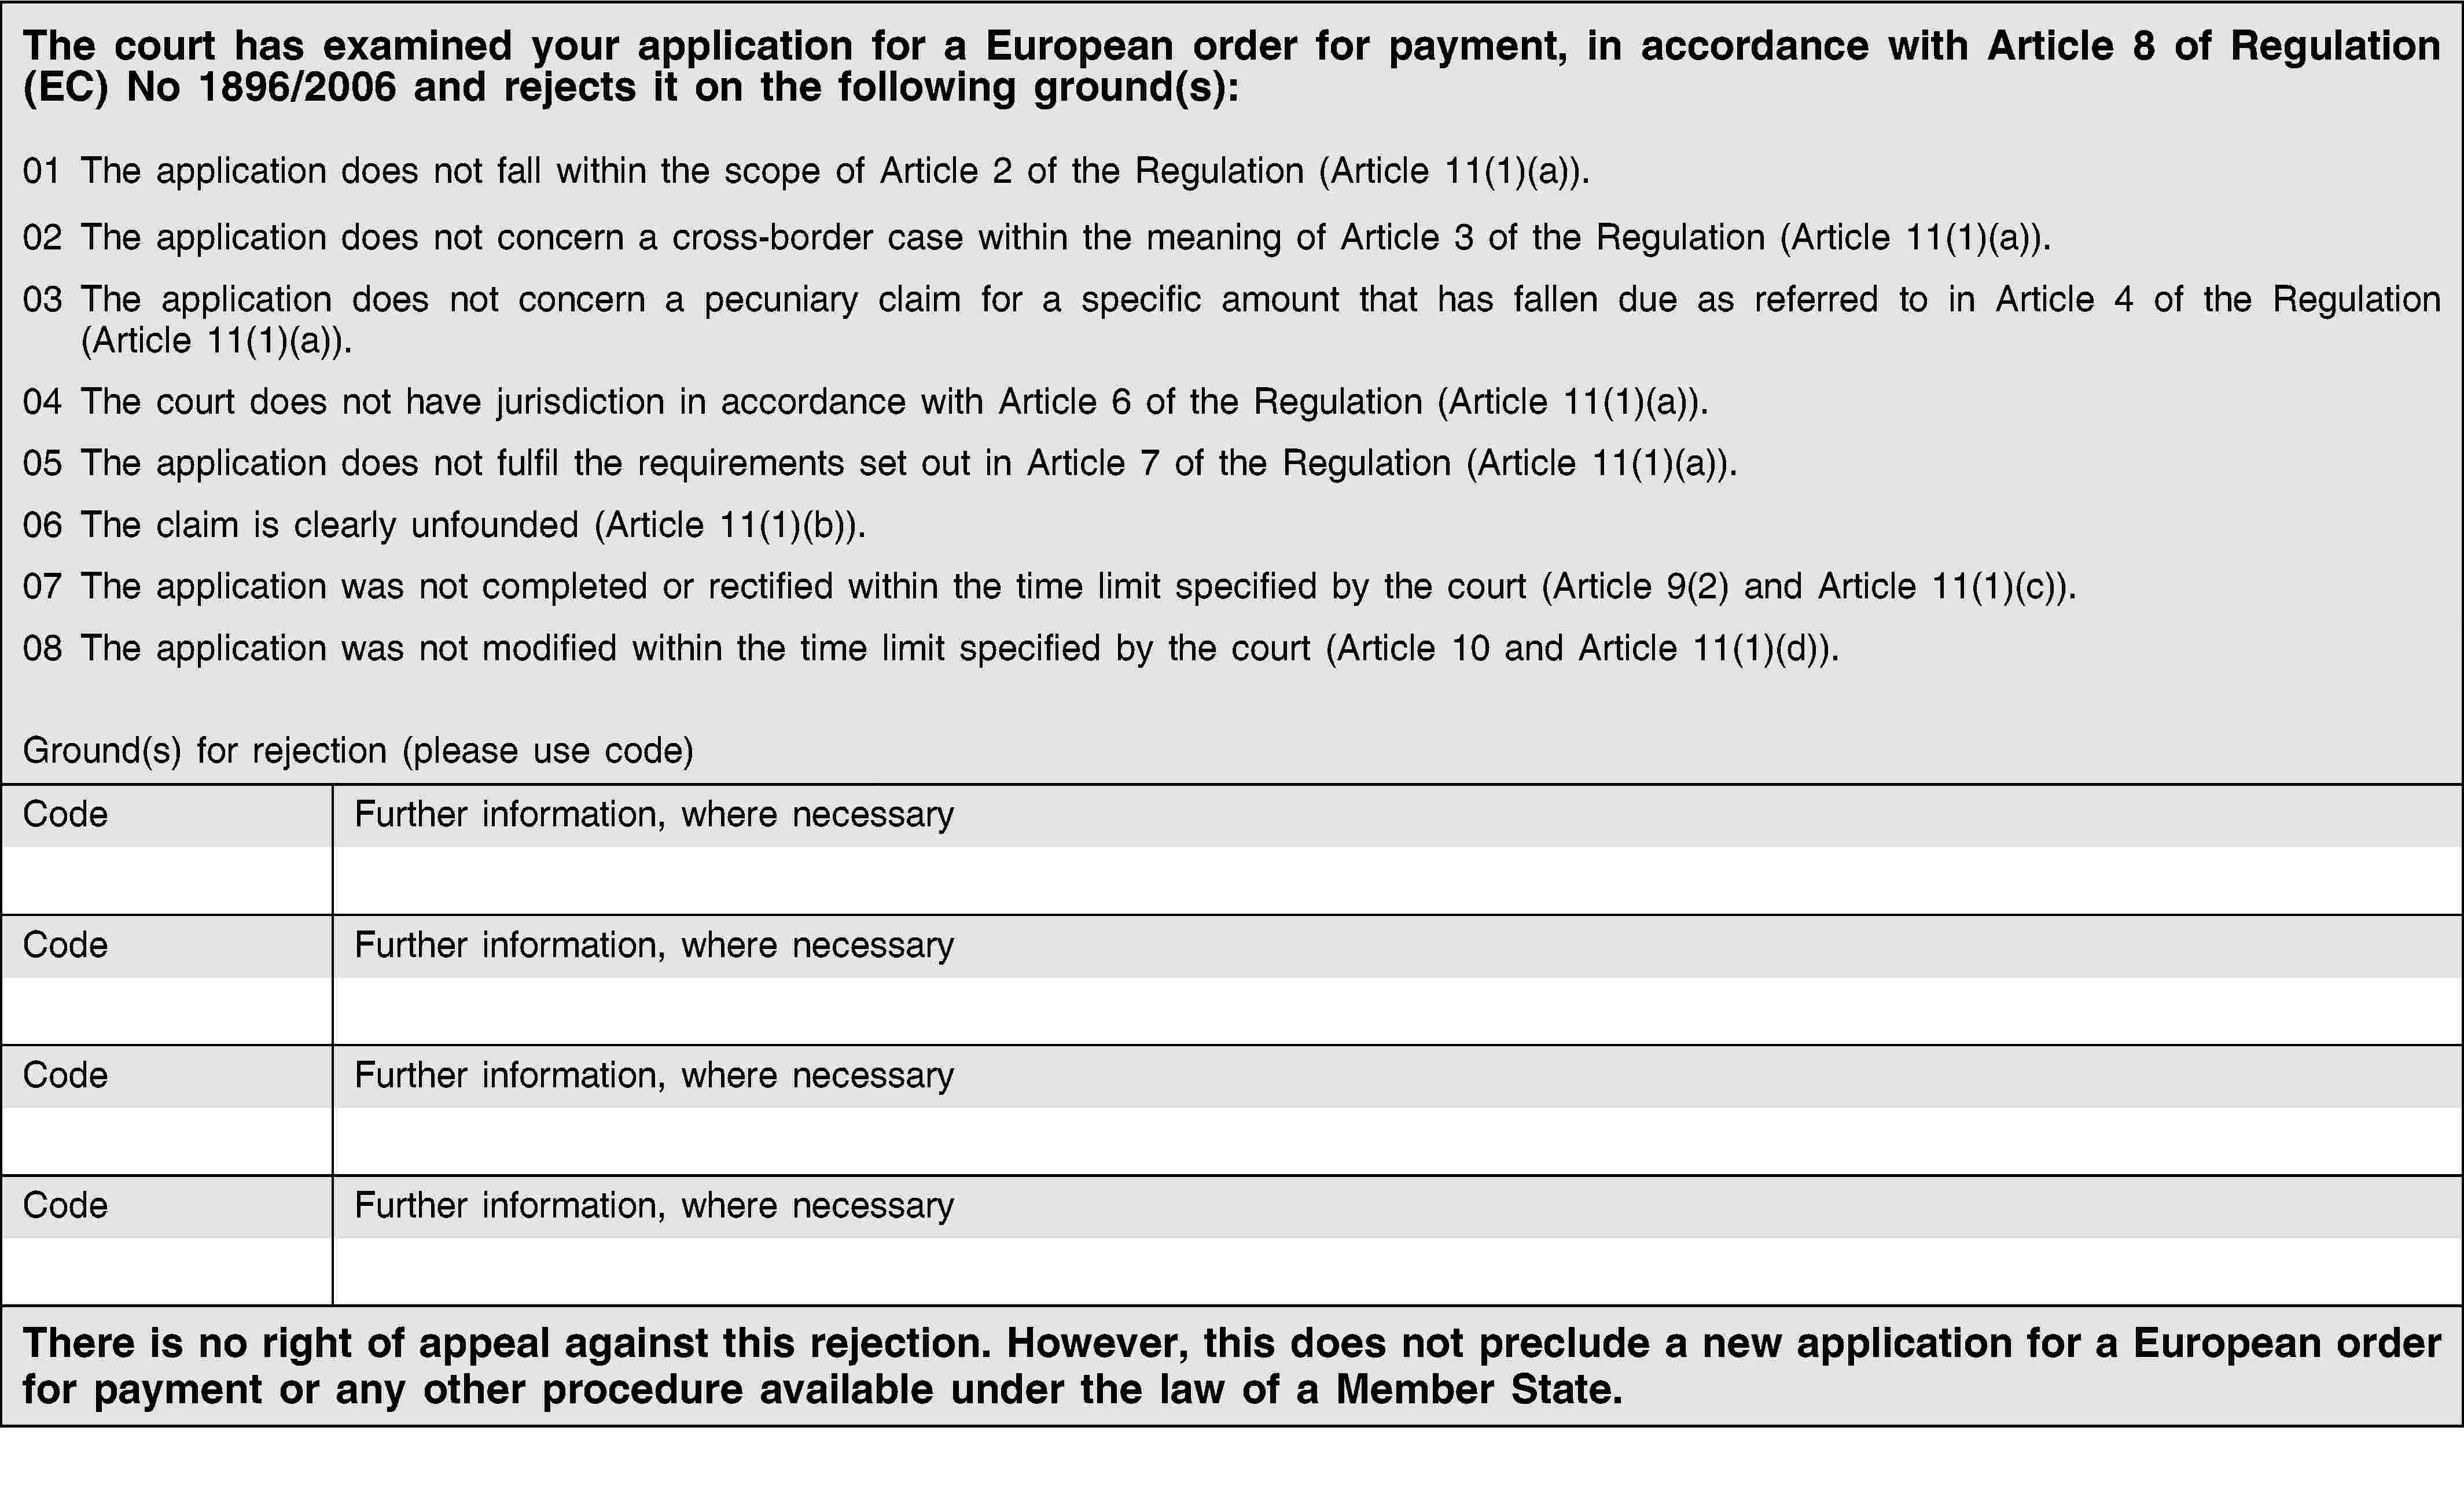 The court has examined your application for a European order for payment, in accordance with Article 8 of Regulation (EC) No 1896/2006 and rejects it on the following ground(s):01 The application does not fall within the scope of Article 2 of the Regulation (Article 11(1)(a)).02 The application does not concern a cross-border case within the meaning of Article 3 of the Regulation (Article 11(1)(a)).03 The application does not concern a pecuniary claim for a specific amount that has fallen due as referred to in Article 4 of the Regulation (Article 11(1)(a)).04 The court does not have jurisdiction in accordance with Article 6 of the Regulation (Article 11(1)(a)).05 The application does not fulfil the requirements set out in Article 7 of the Regulation (Article 11(1)(a)).06 The claim is clearly unfounded (Article 11(1)(b)).07 The application was not completed or rectified within the time limit specified by the court (Article 9(2) and Article 11(1)(c)).08 The application was not modified within the time limit specified by the court (Article 10 and Article 11(1)(d)).Ground(s) for rejection (please use code)CodeFurther information, where necessaryCodeFurther information, where necessaryCodeFurther information, where necessaryCodeFurther information, where necessaryThere is no right of appeal against this rejection. However, this does not preclude a new application for a European order for payment or any other procedure available under the law of a Member State.